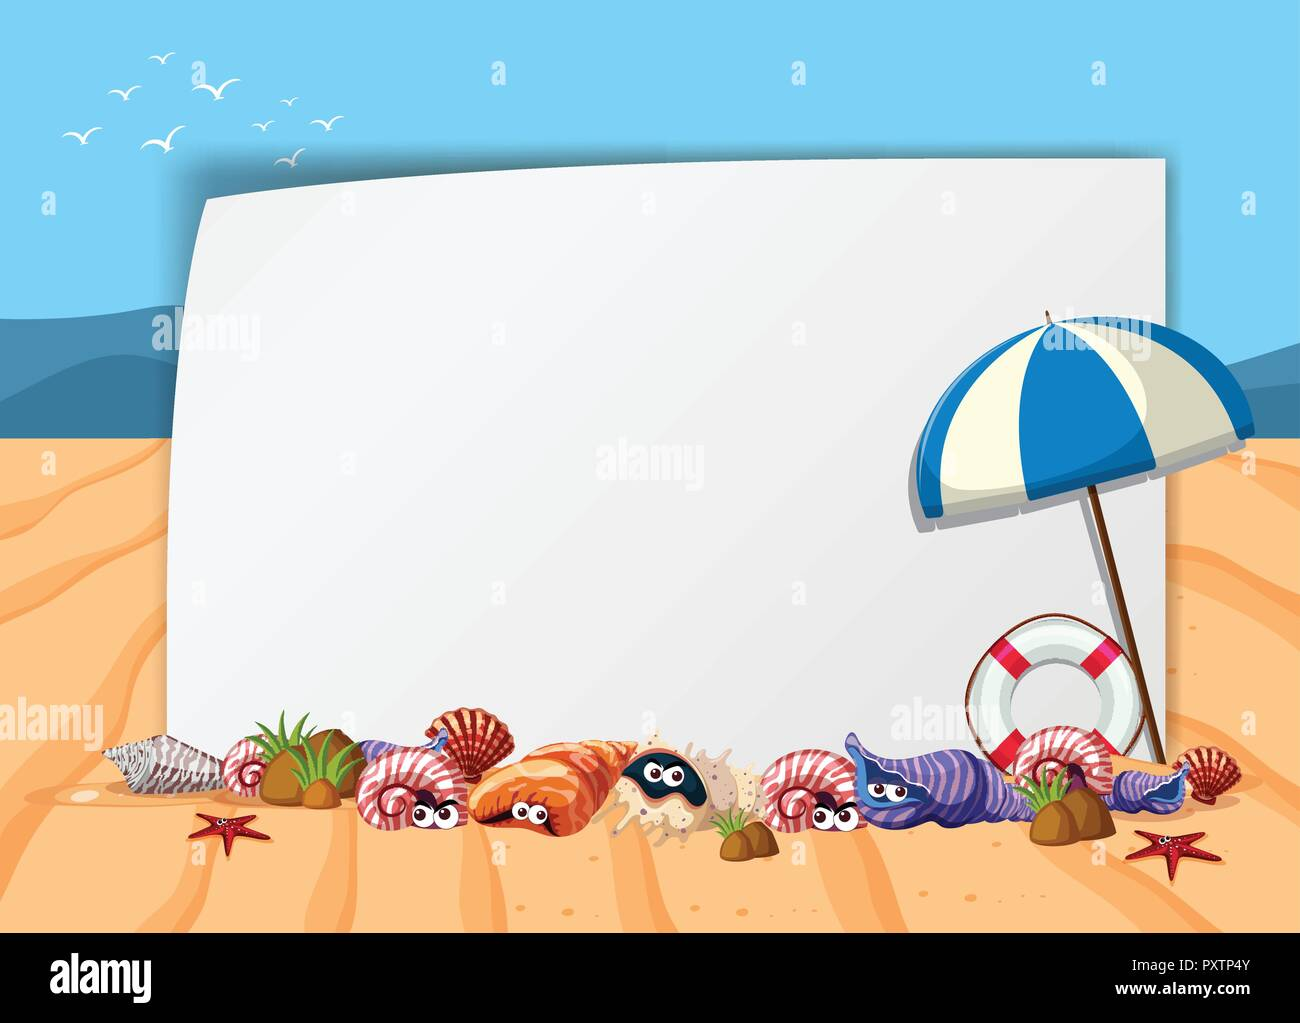 Beach Sand Writing Stock Vector Images - Alamy